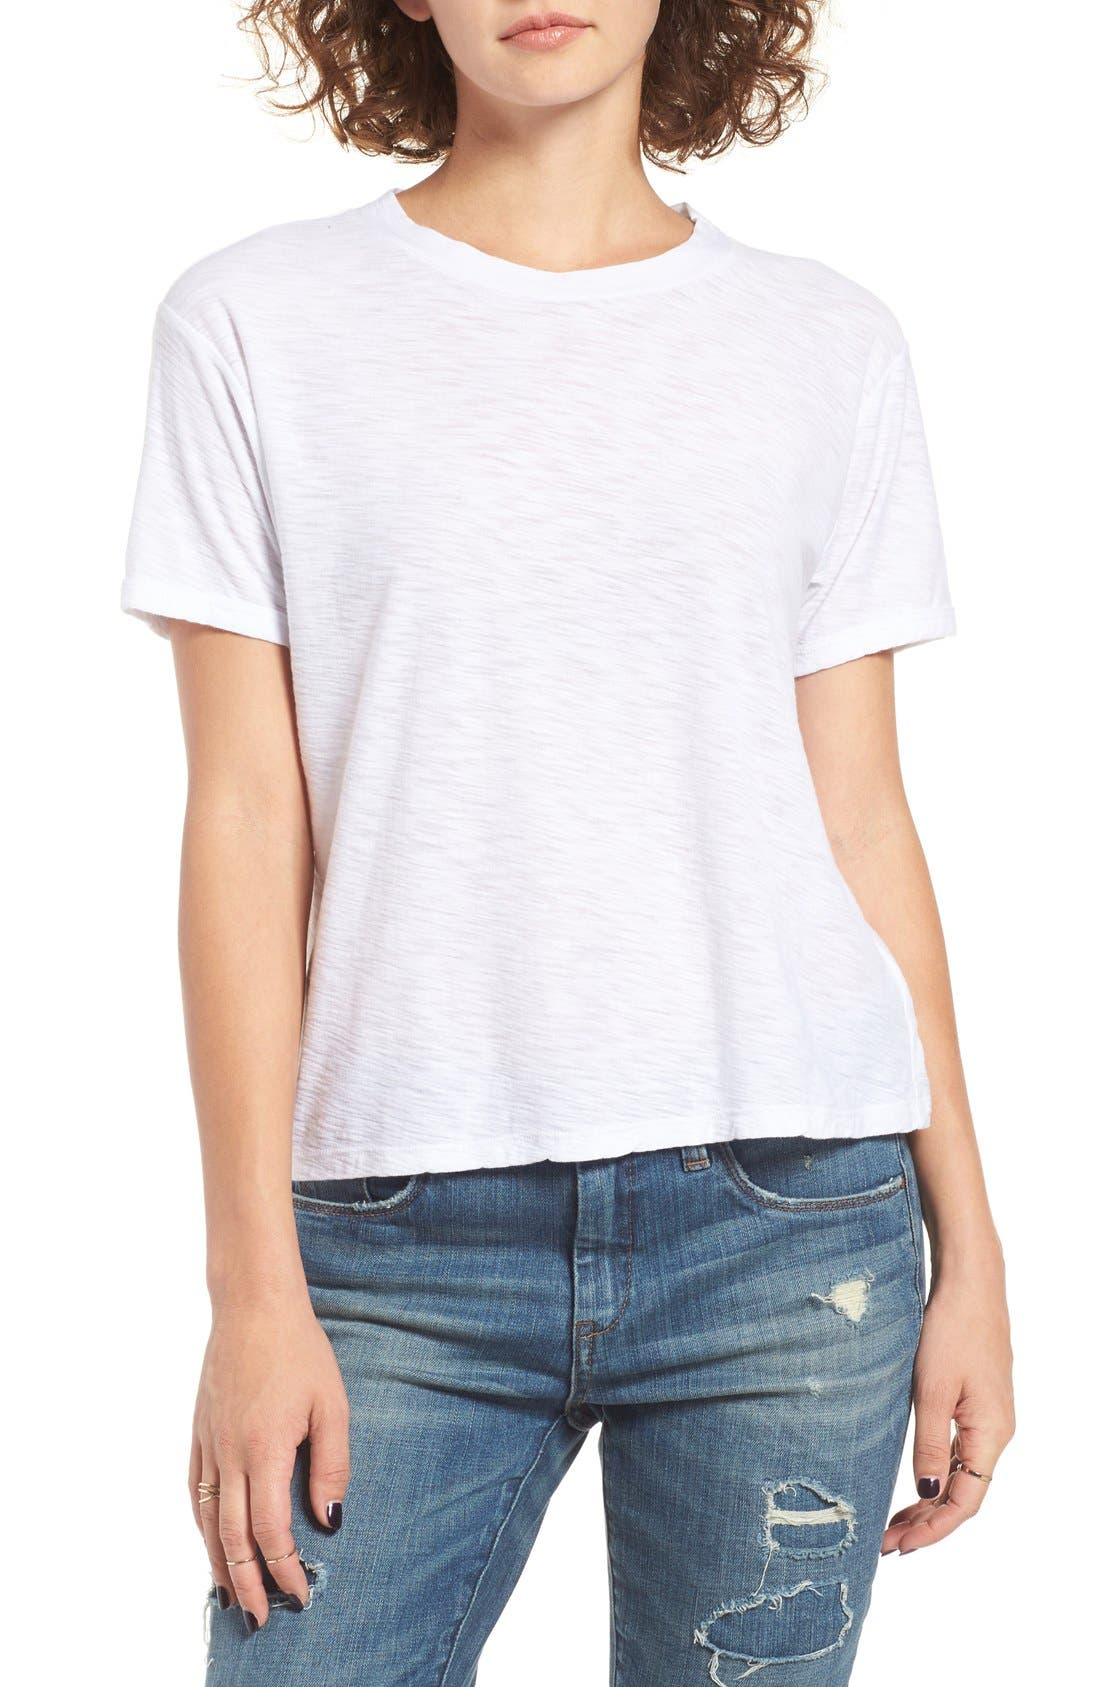 Alternate Image 2  - Michelle by Comune Augsburg Chill Out Burnout Tee